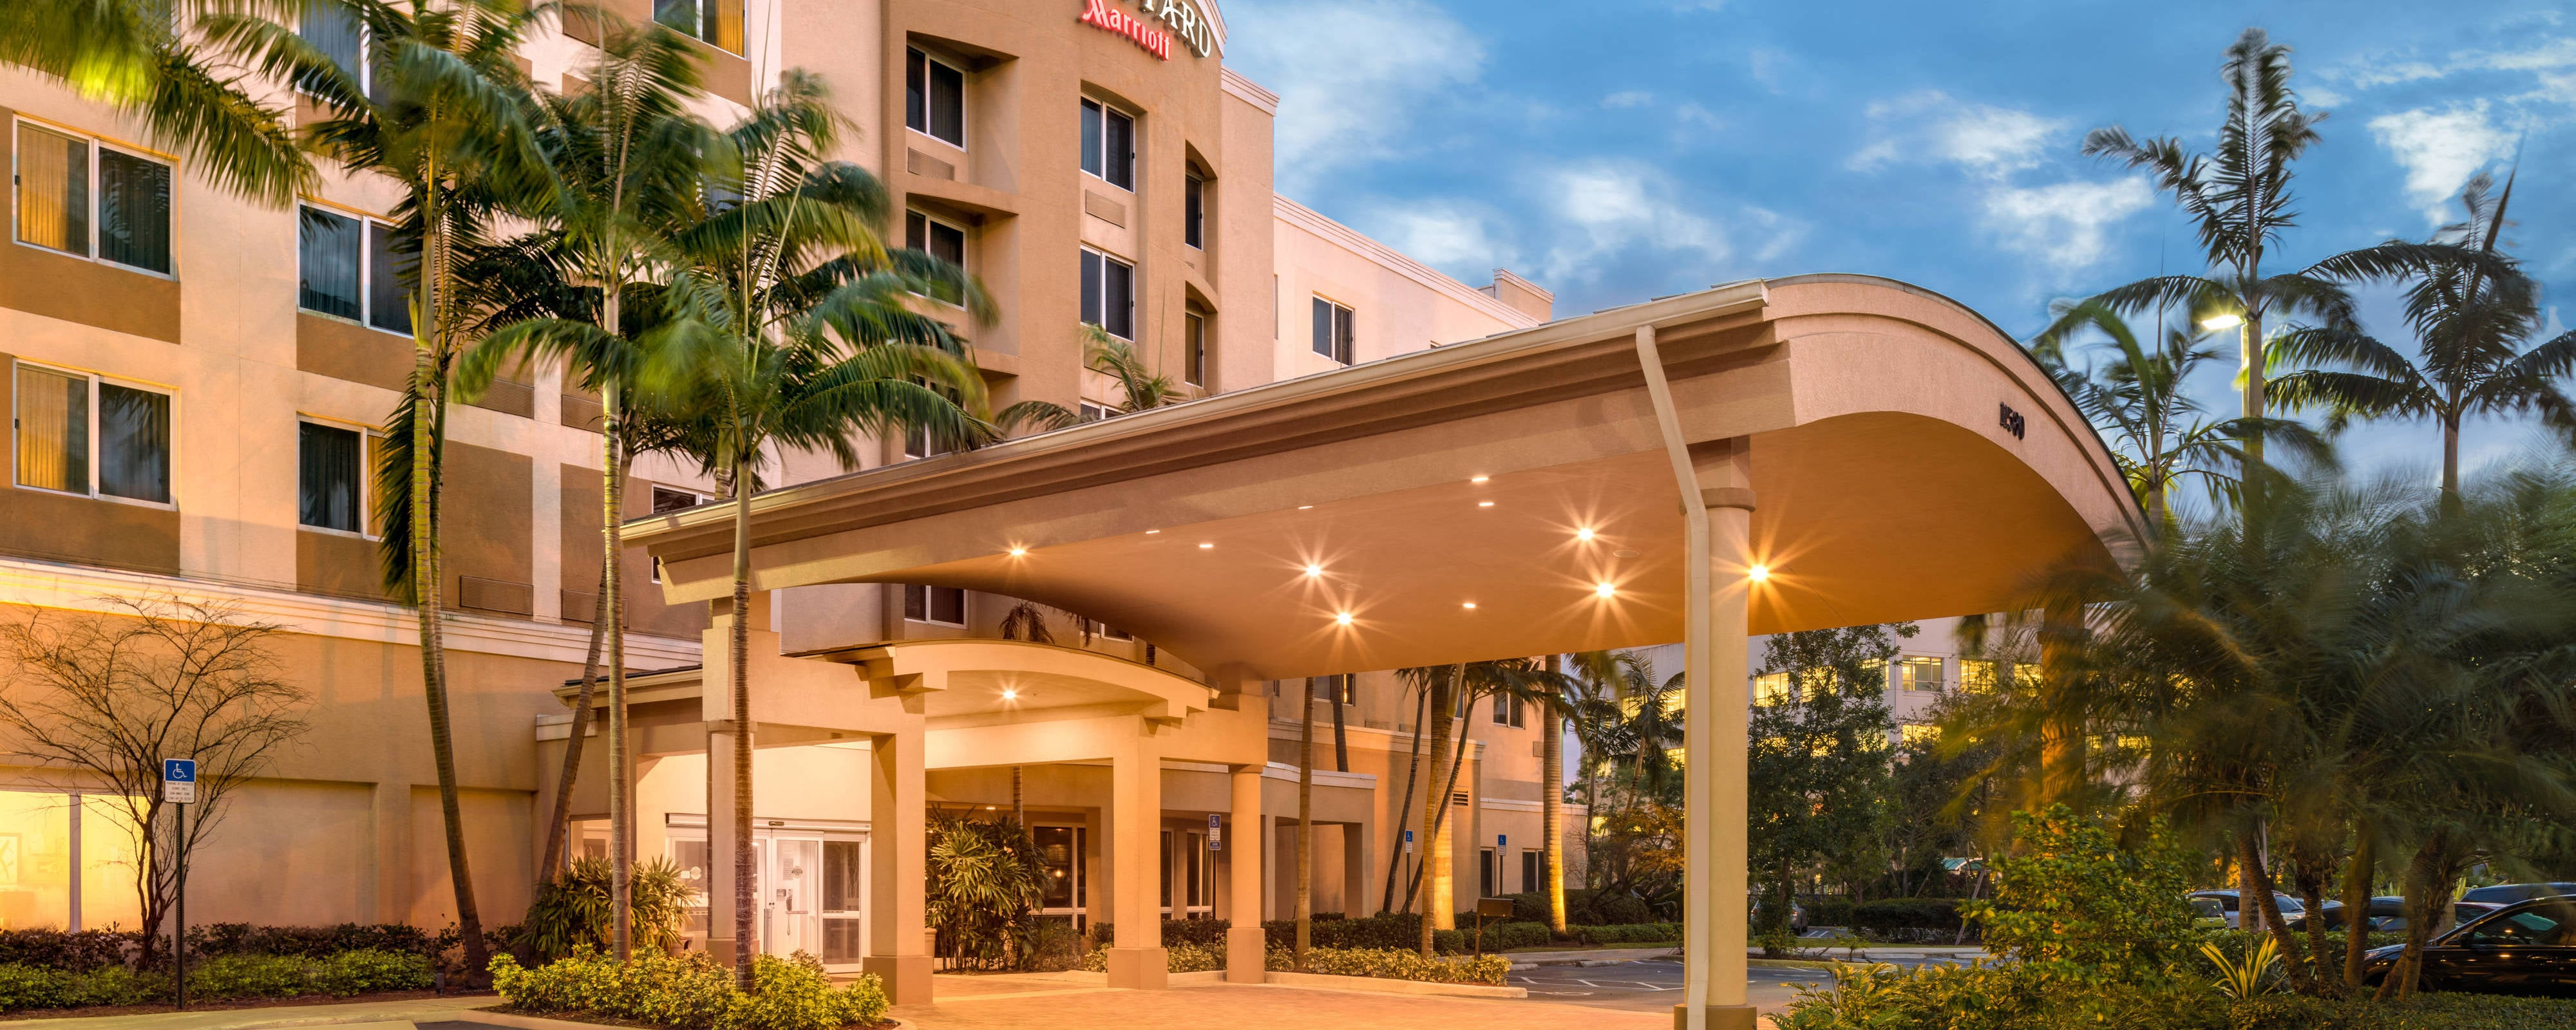 West Miami Hotels in Doral, Florida | Courtyard Miami West/FL Turnpike